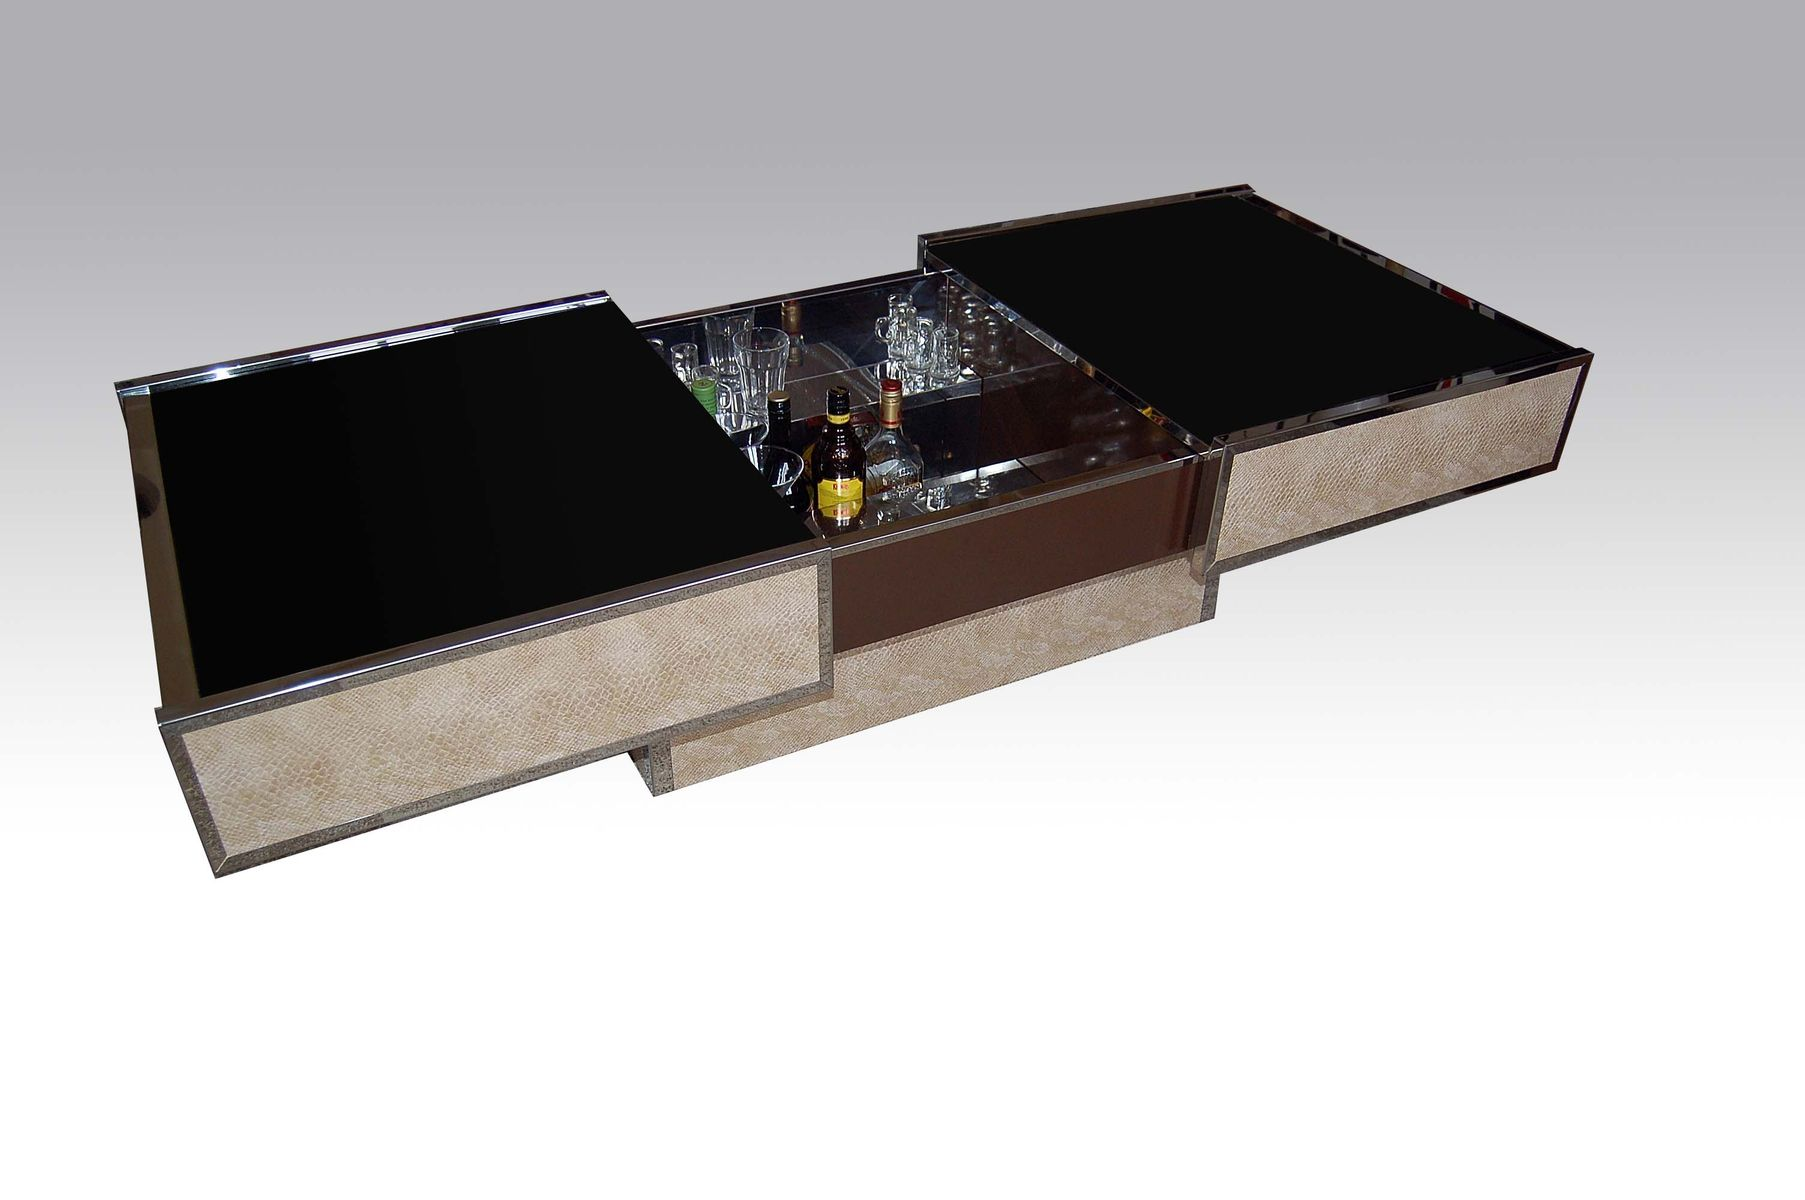 Coffee Table with Bar by Willy Rizzo for Cidue 1970s for sale at